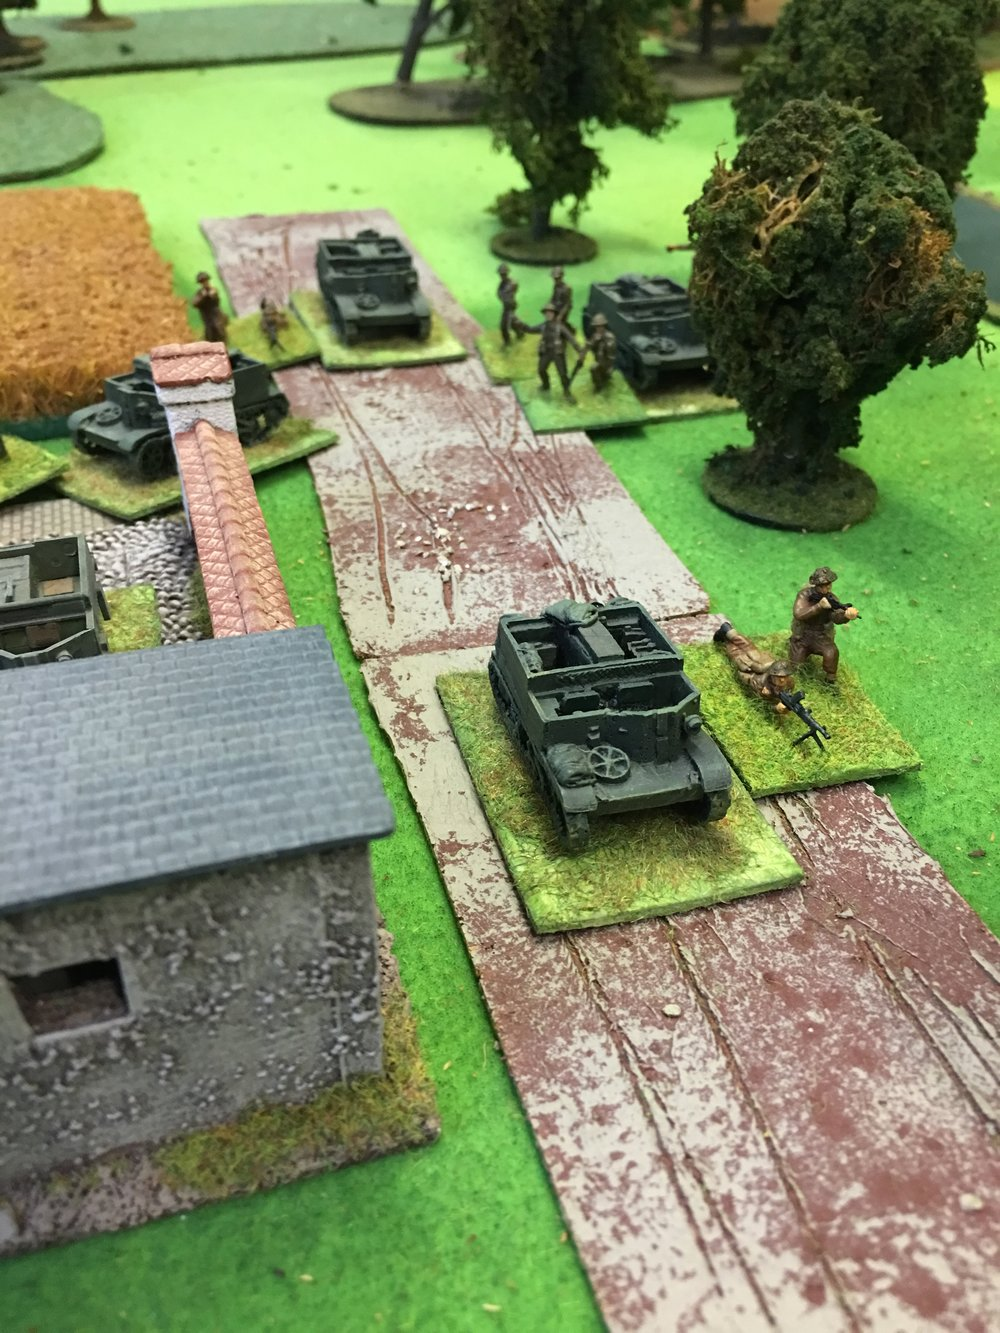 Counter-attack with carriers and infantry